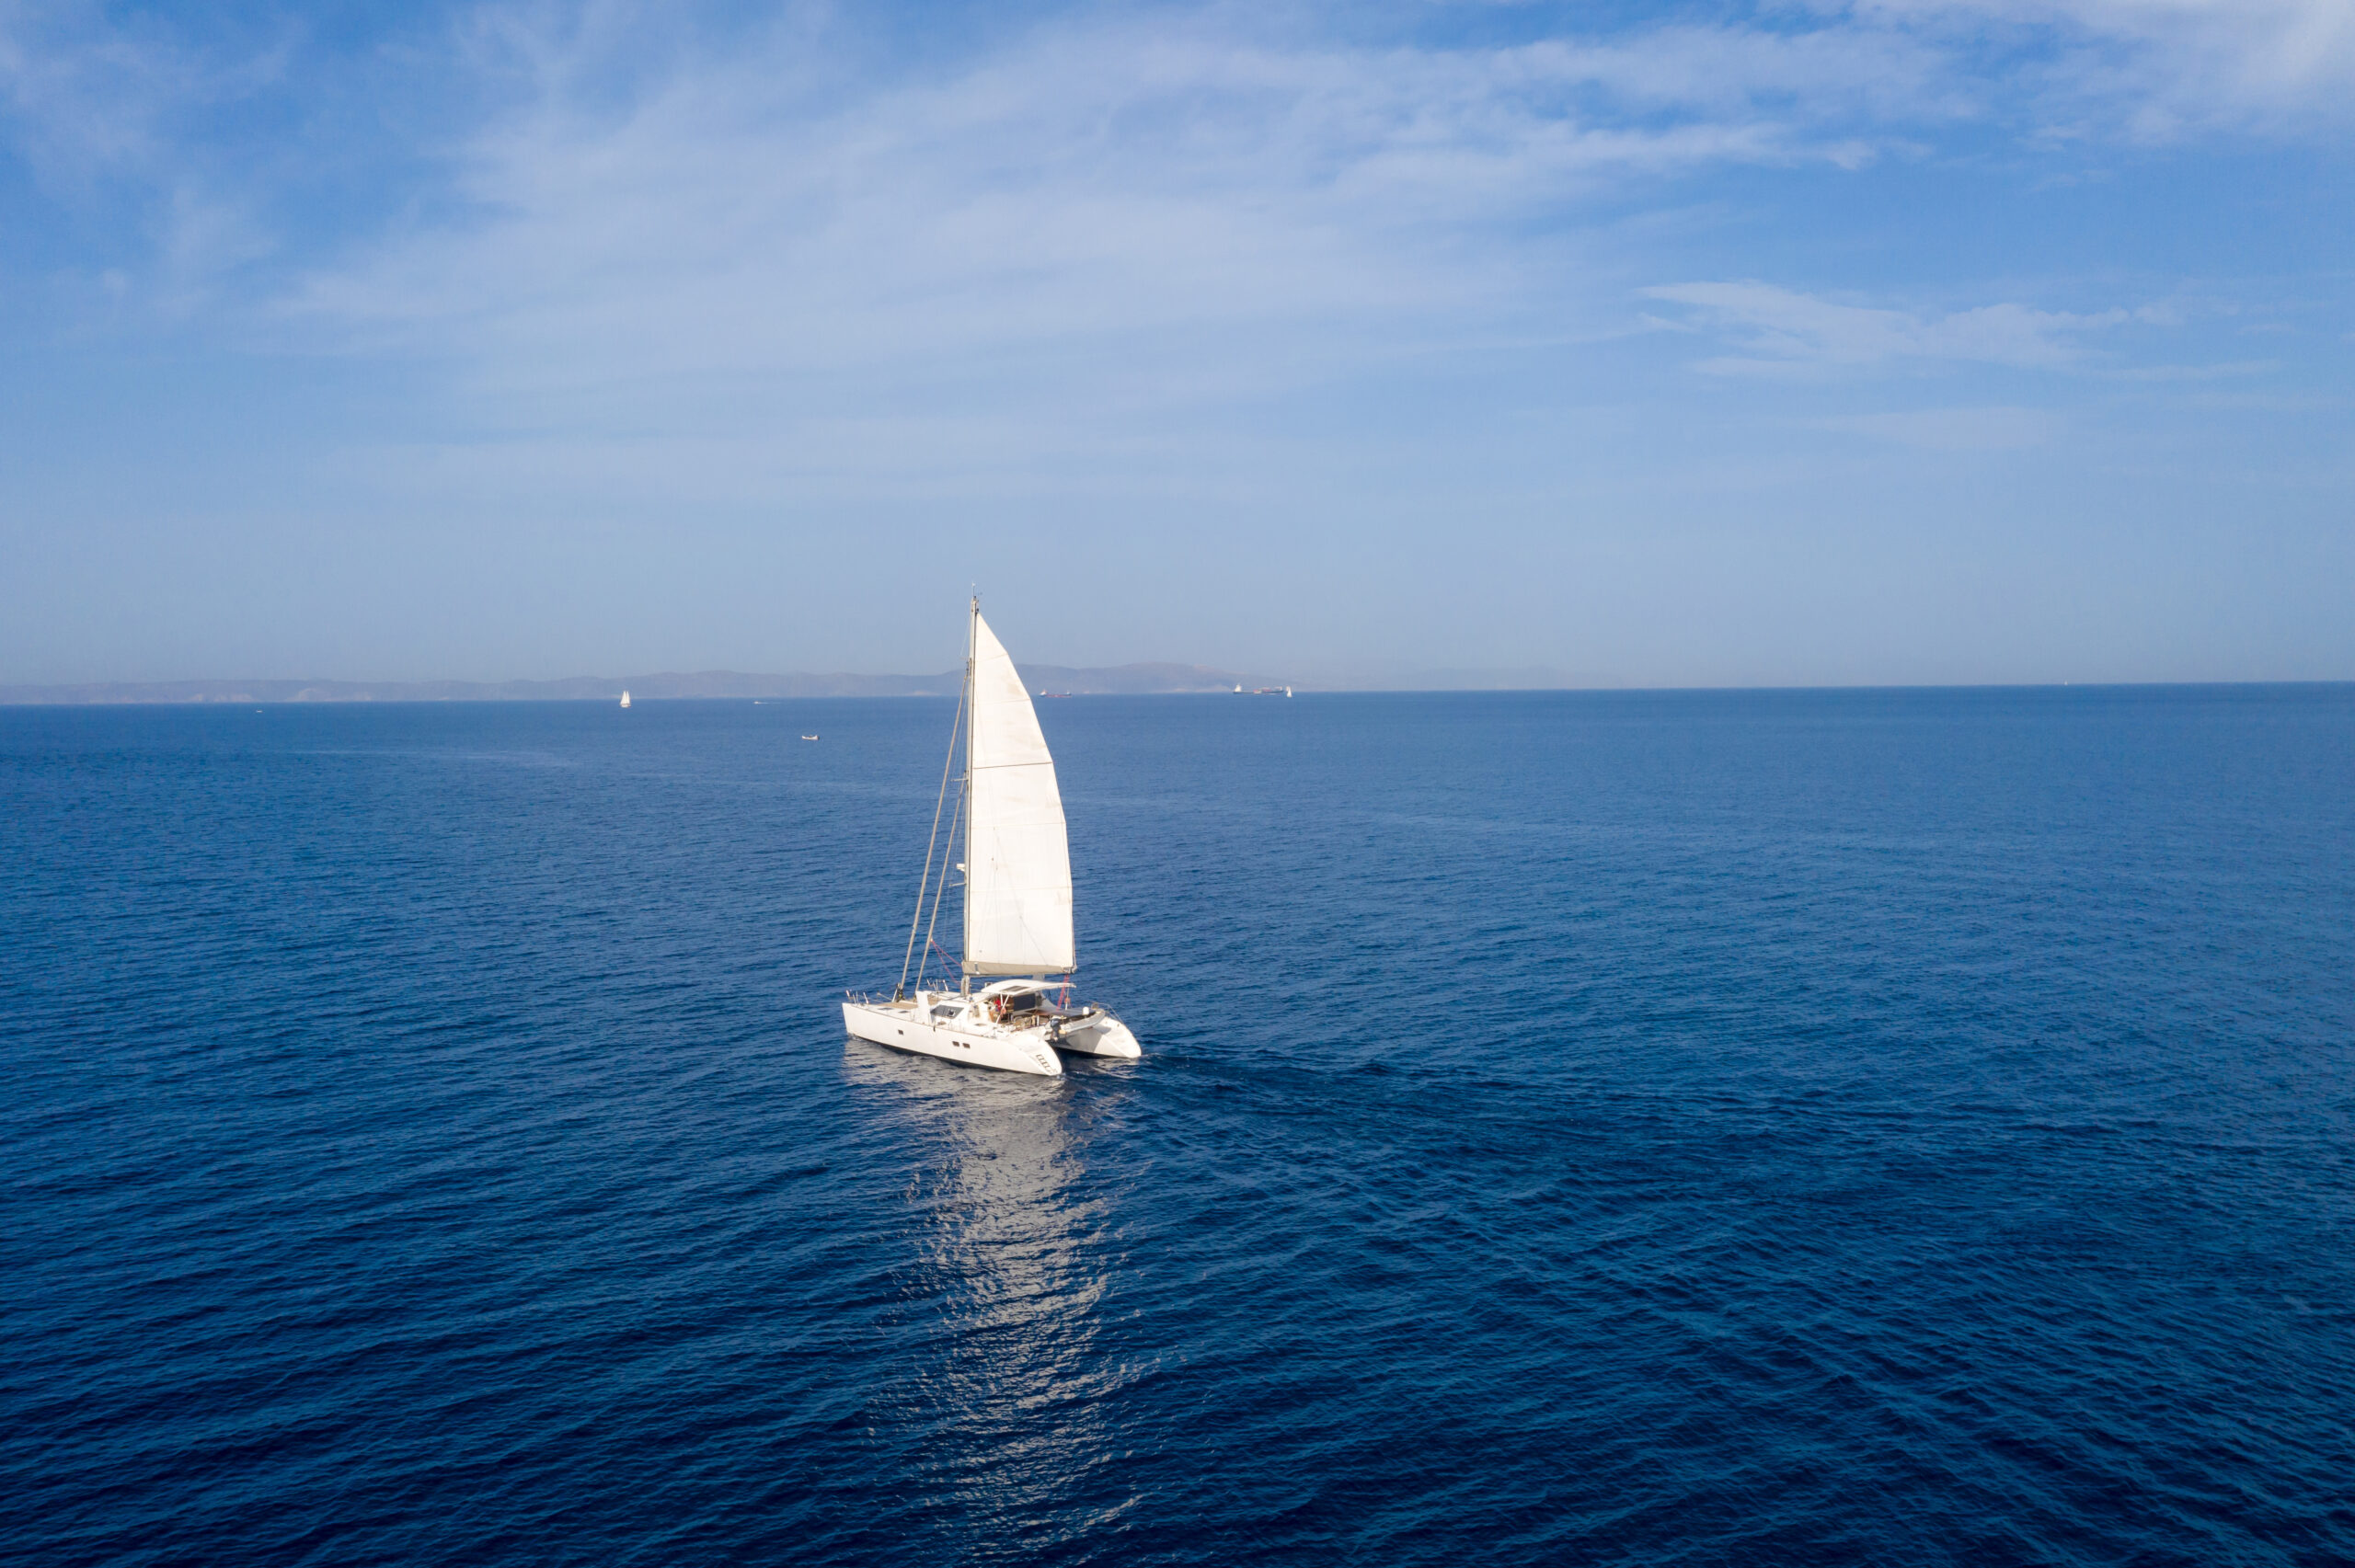 Sailing. Sailboat catamaran with white sails, cloudy sky and rippled sea background. Summer holidays in Aegean sea Greece